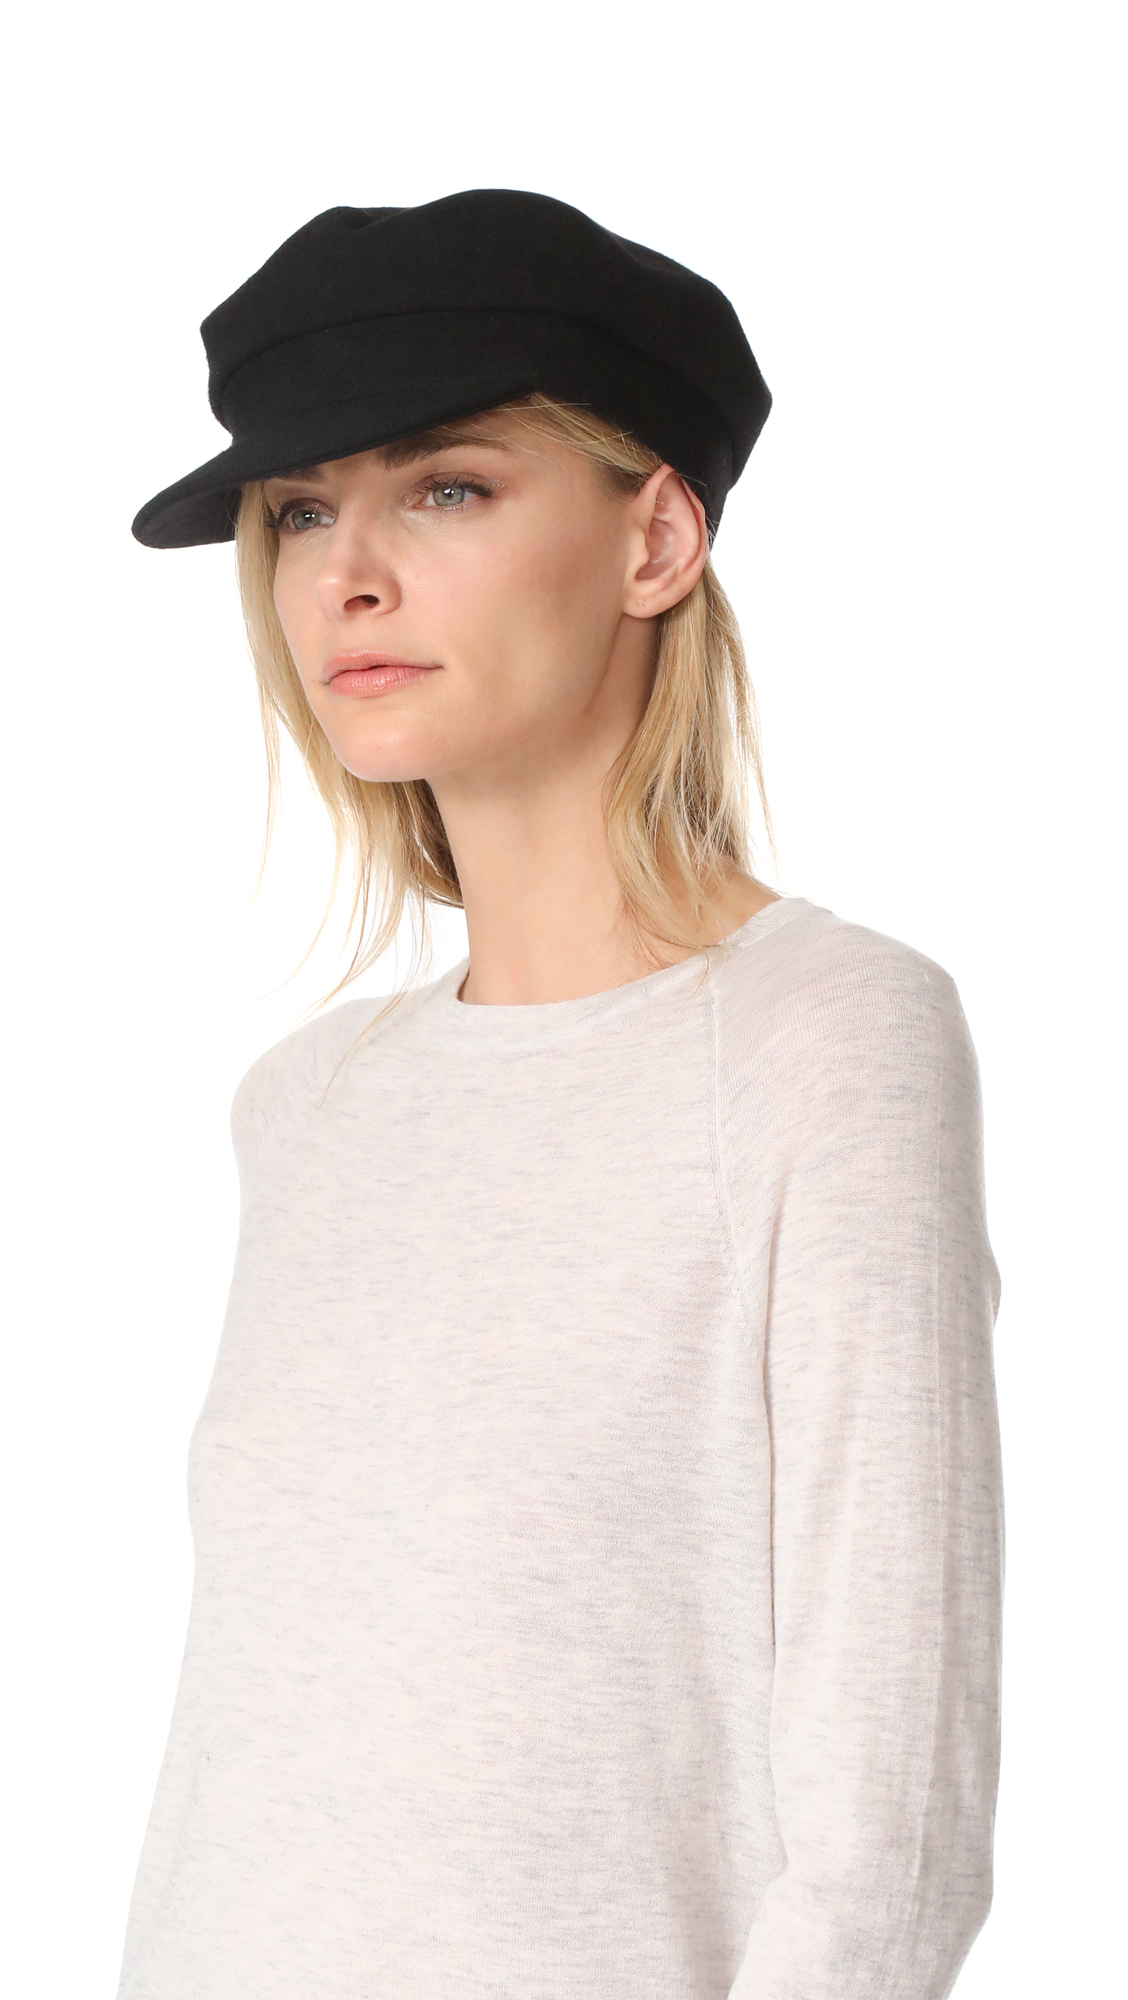 Janessa Leone Mattie Greek Fisherman Cap - Black